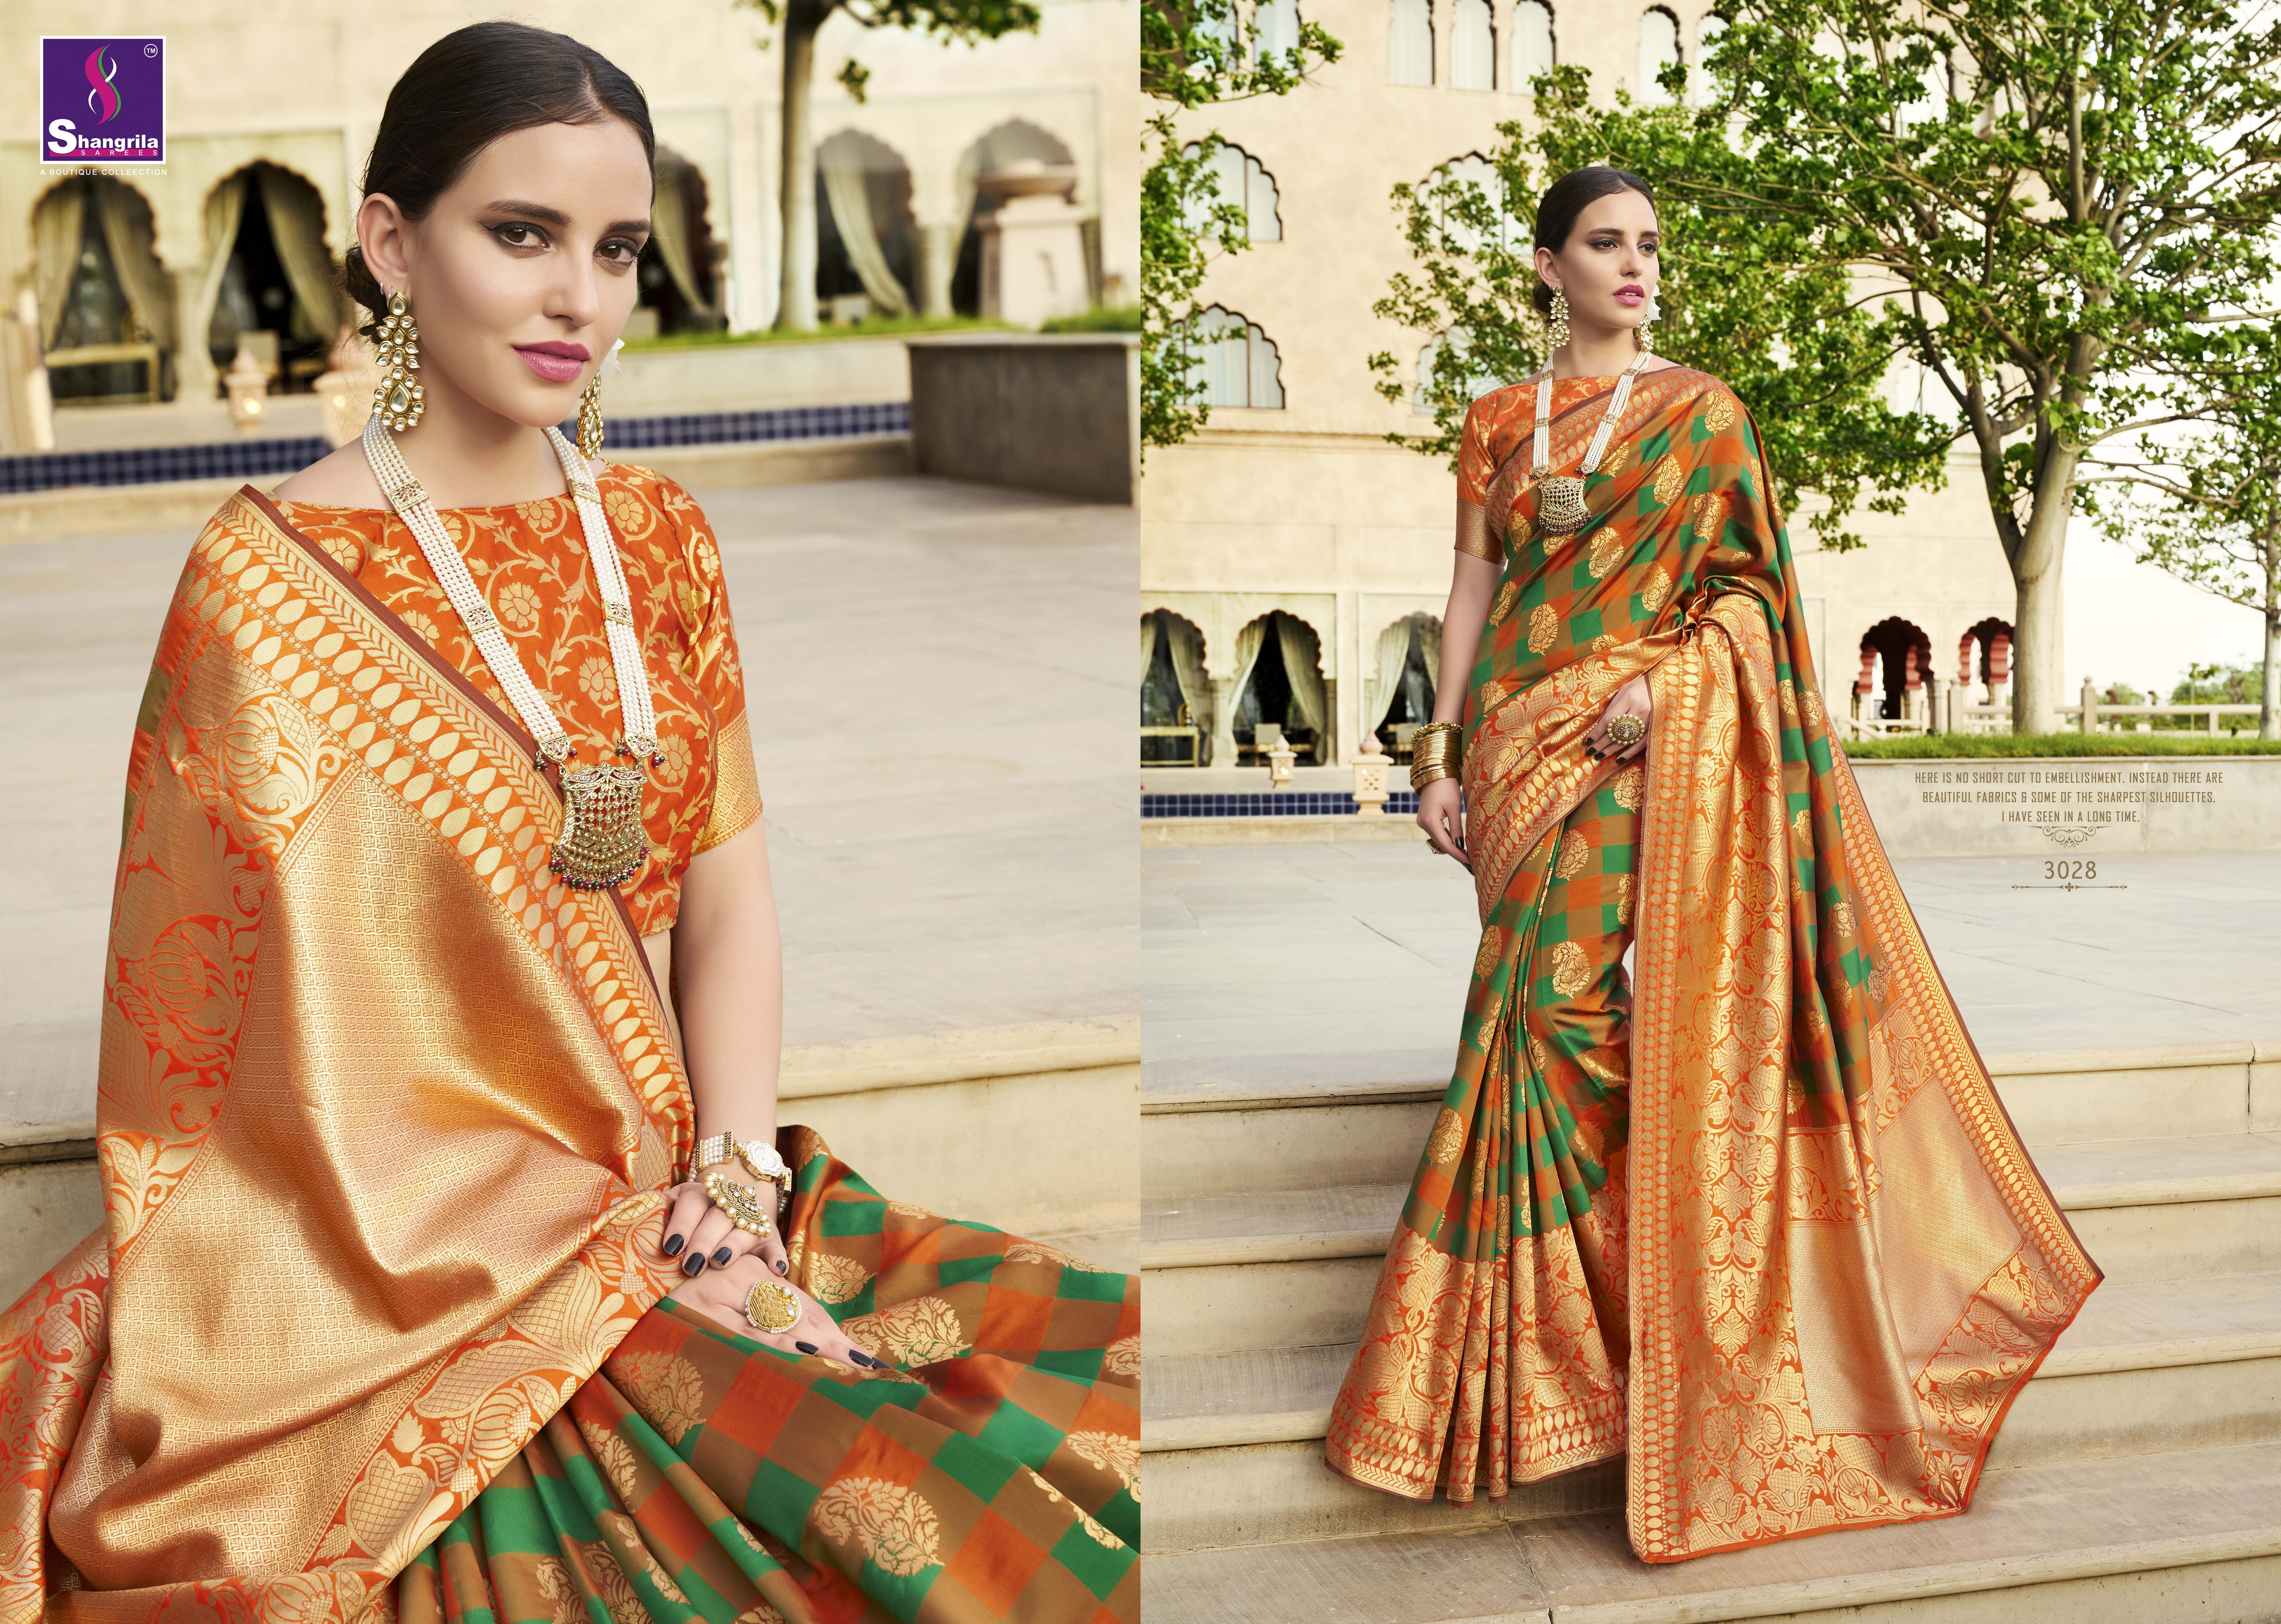 850d4506ccfe9 Which are the best Indian sarees to wear in festivals  - Quora